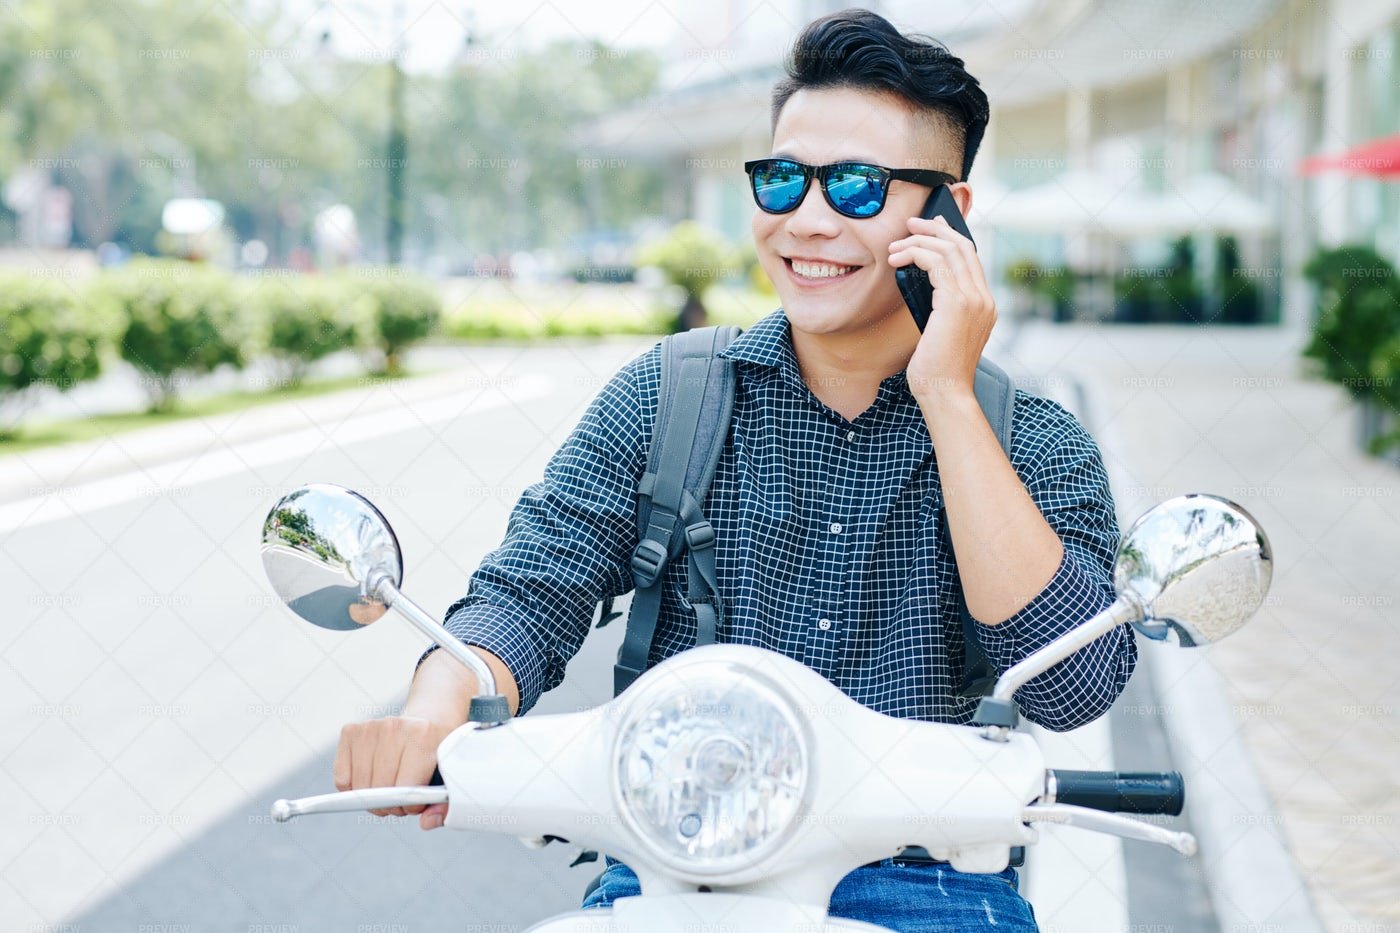 Smiling Man Riding On Scooter: Stock Photos